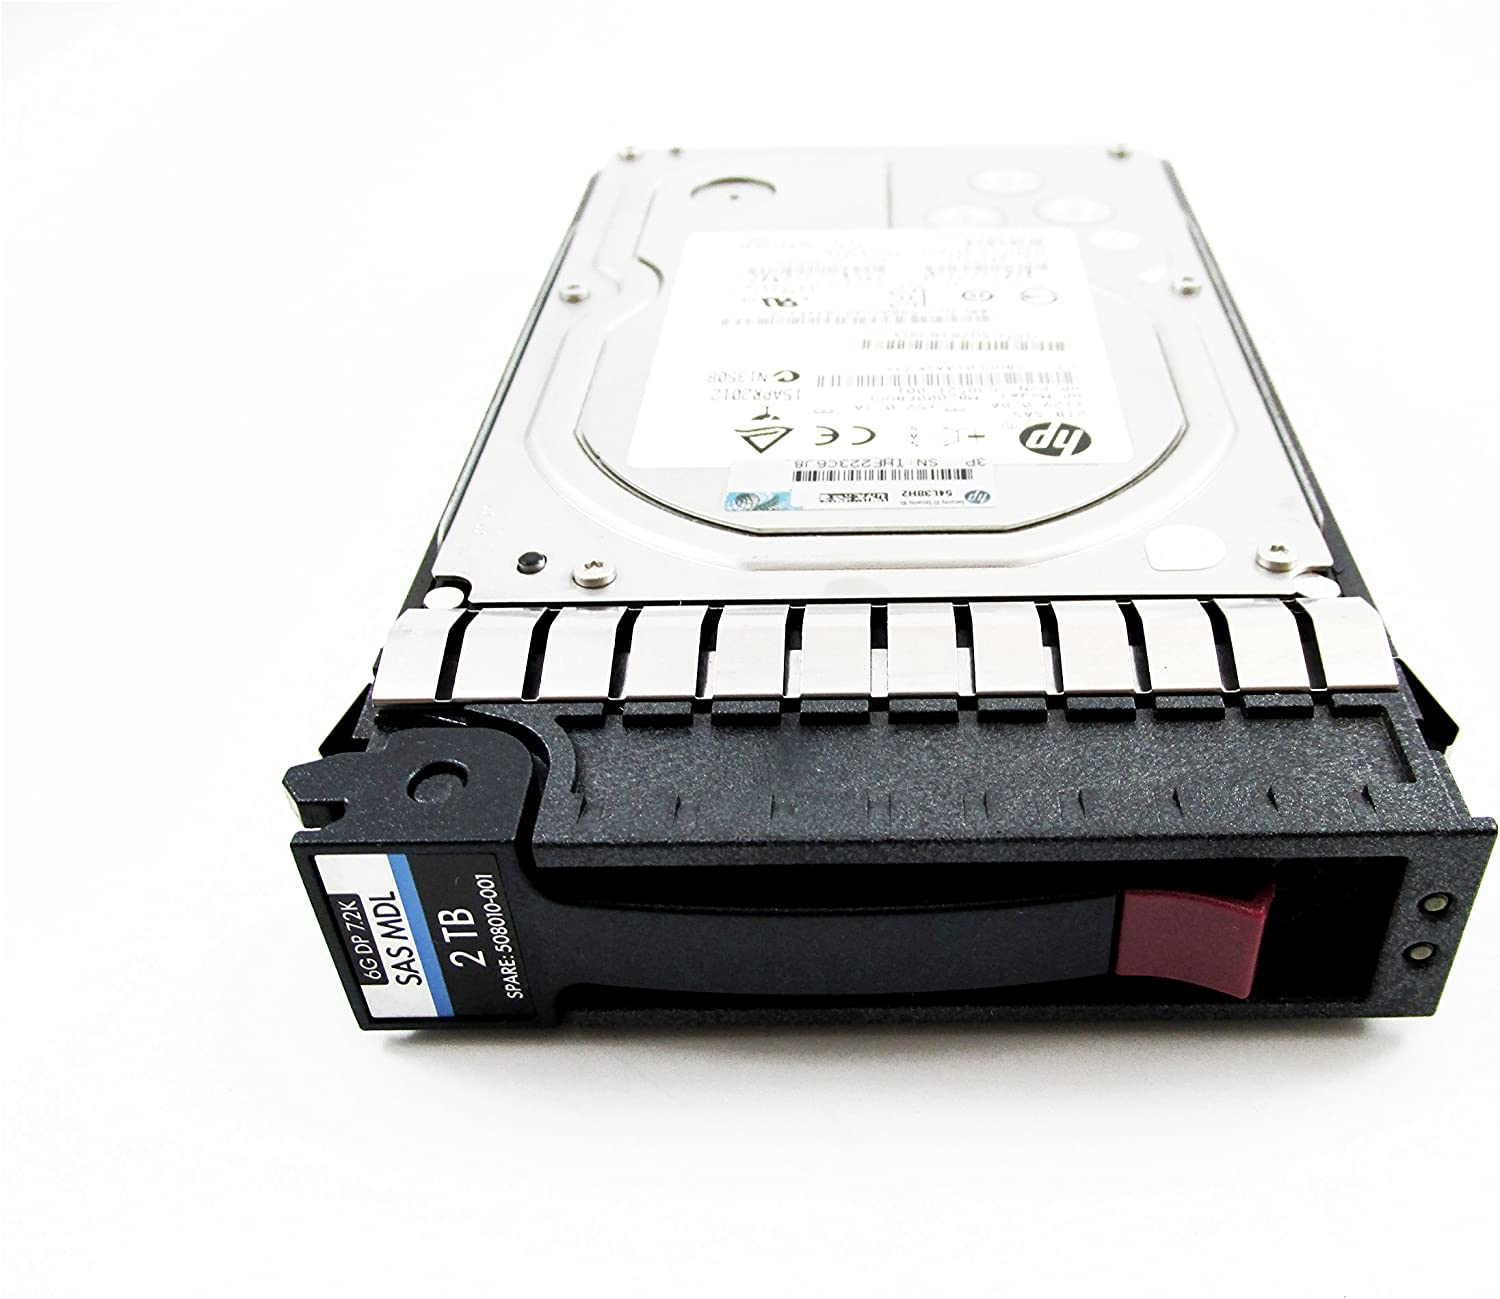 "LOT OF 2 695507-002 507616-B21 HPE 2TB 6G SAS 7.2K LFF 3.5/"" MDL DP HARD DRIVE"